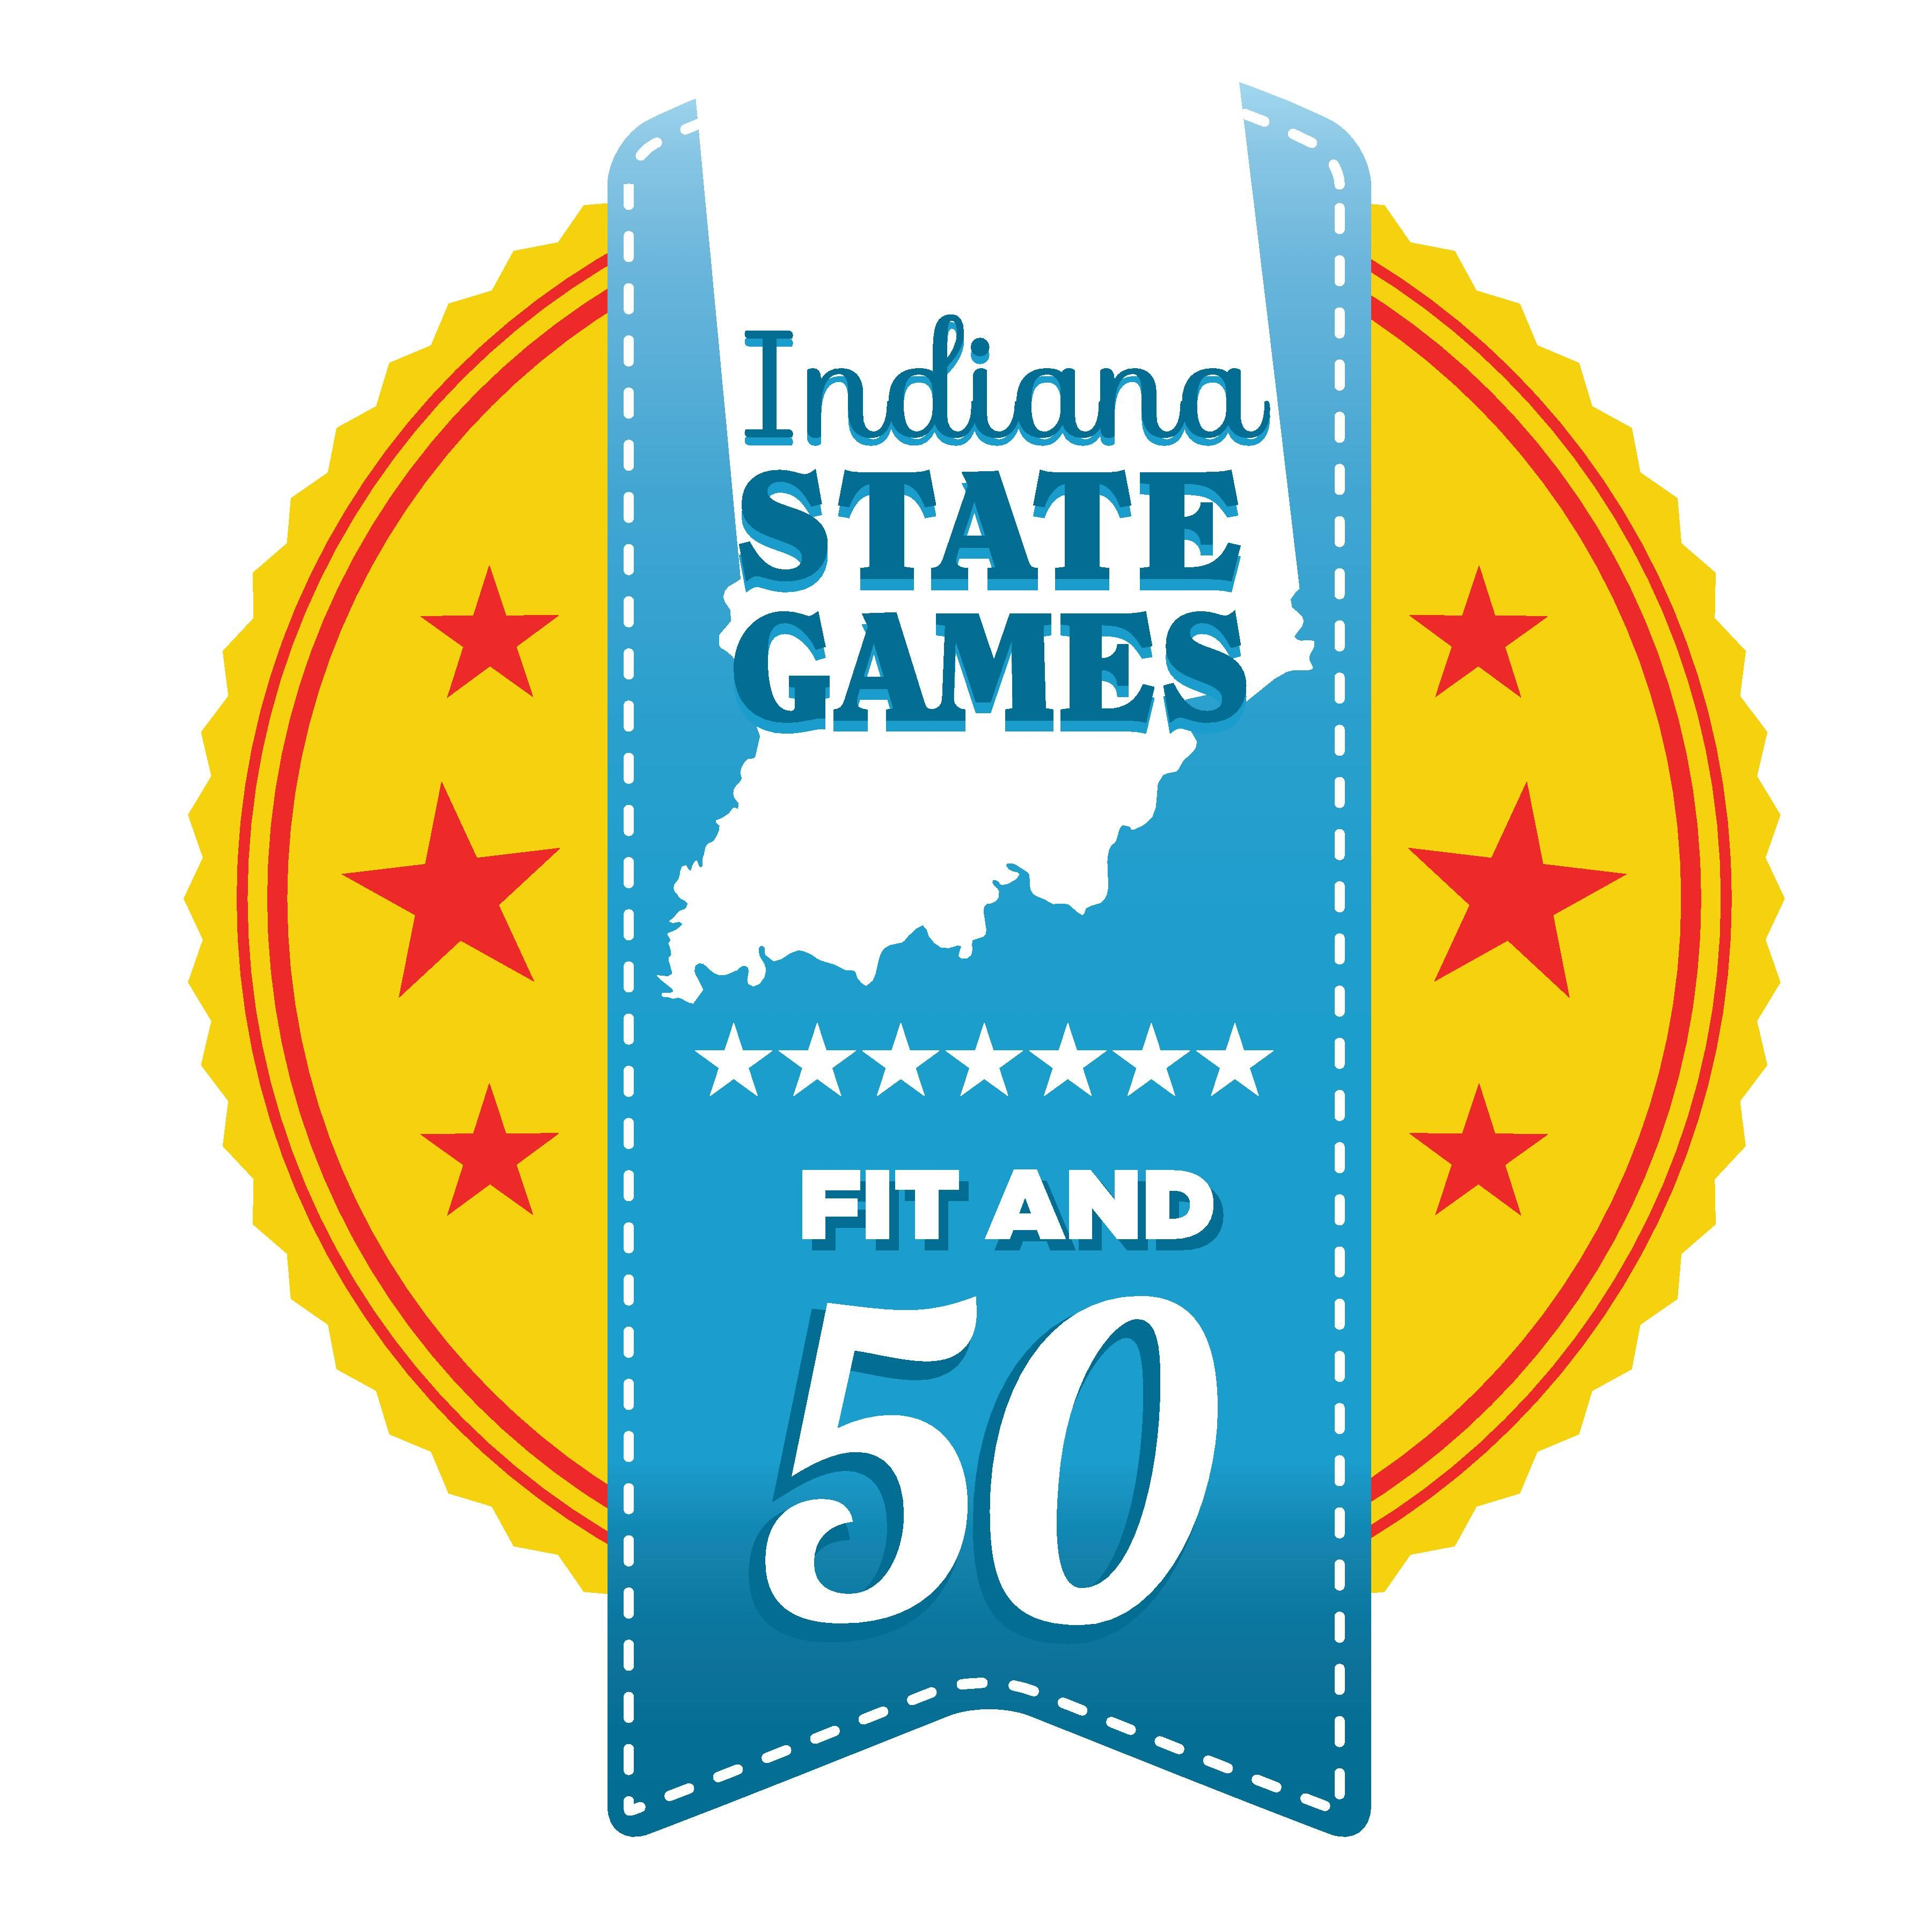 Indiana State Games